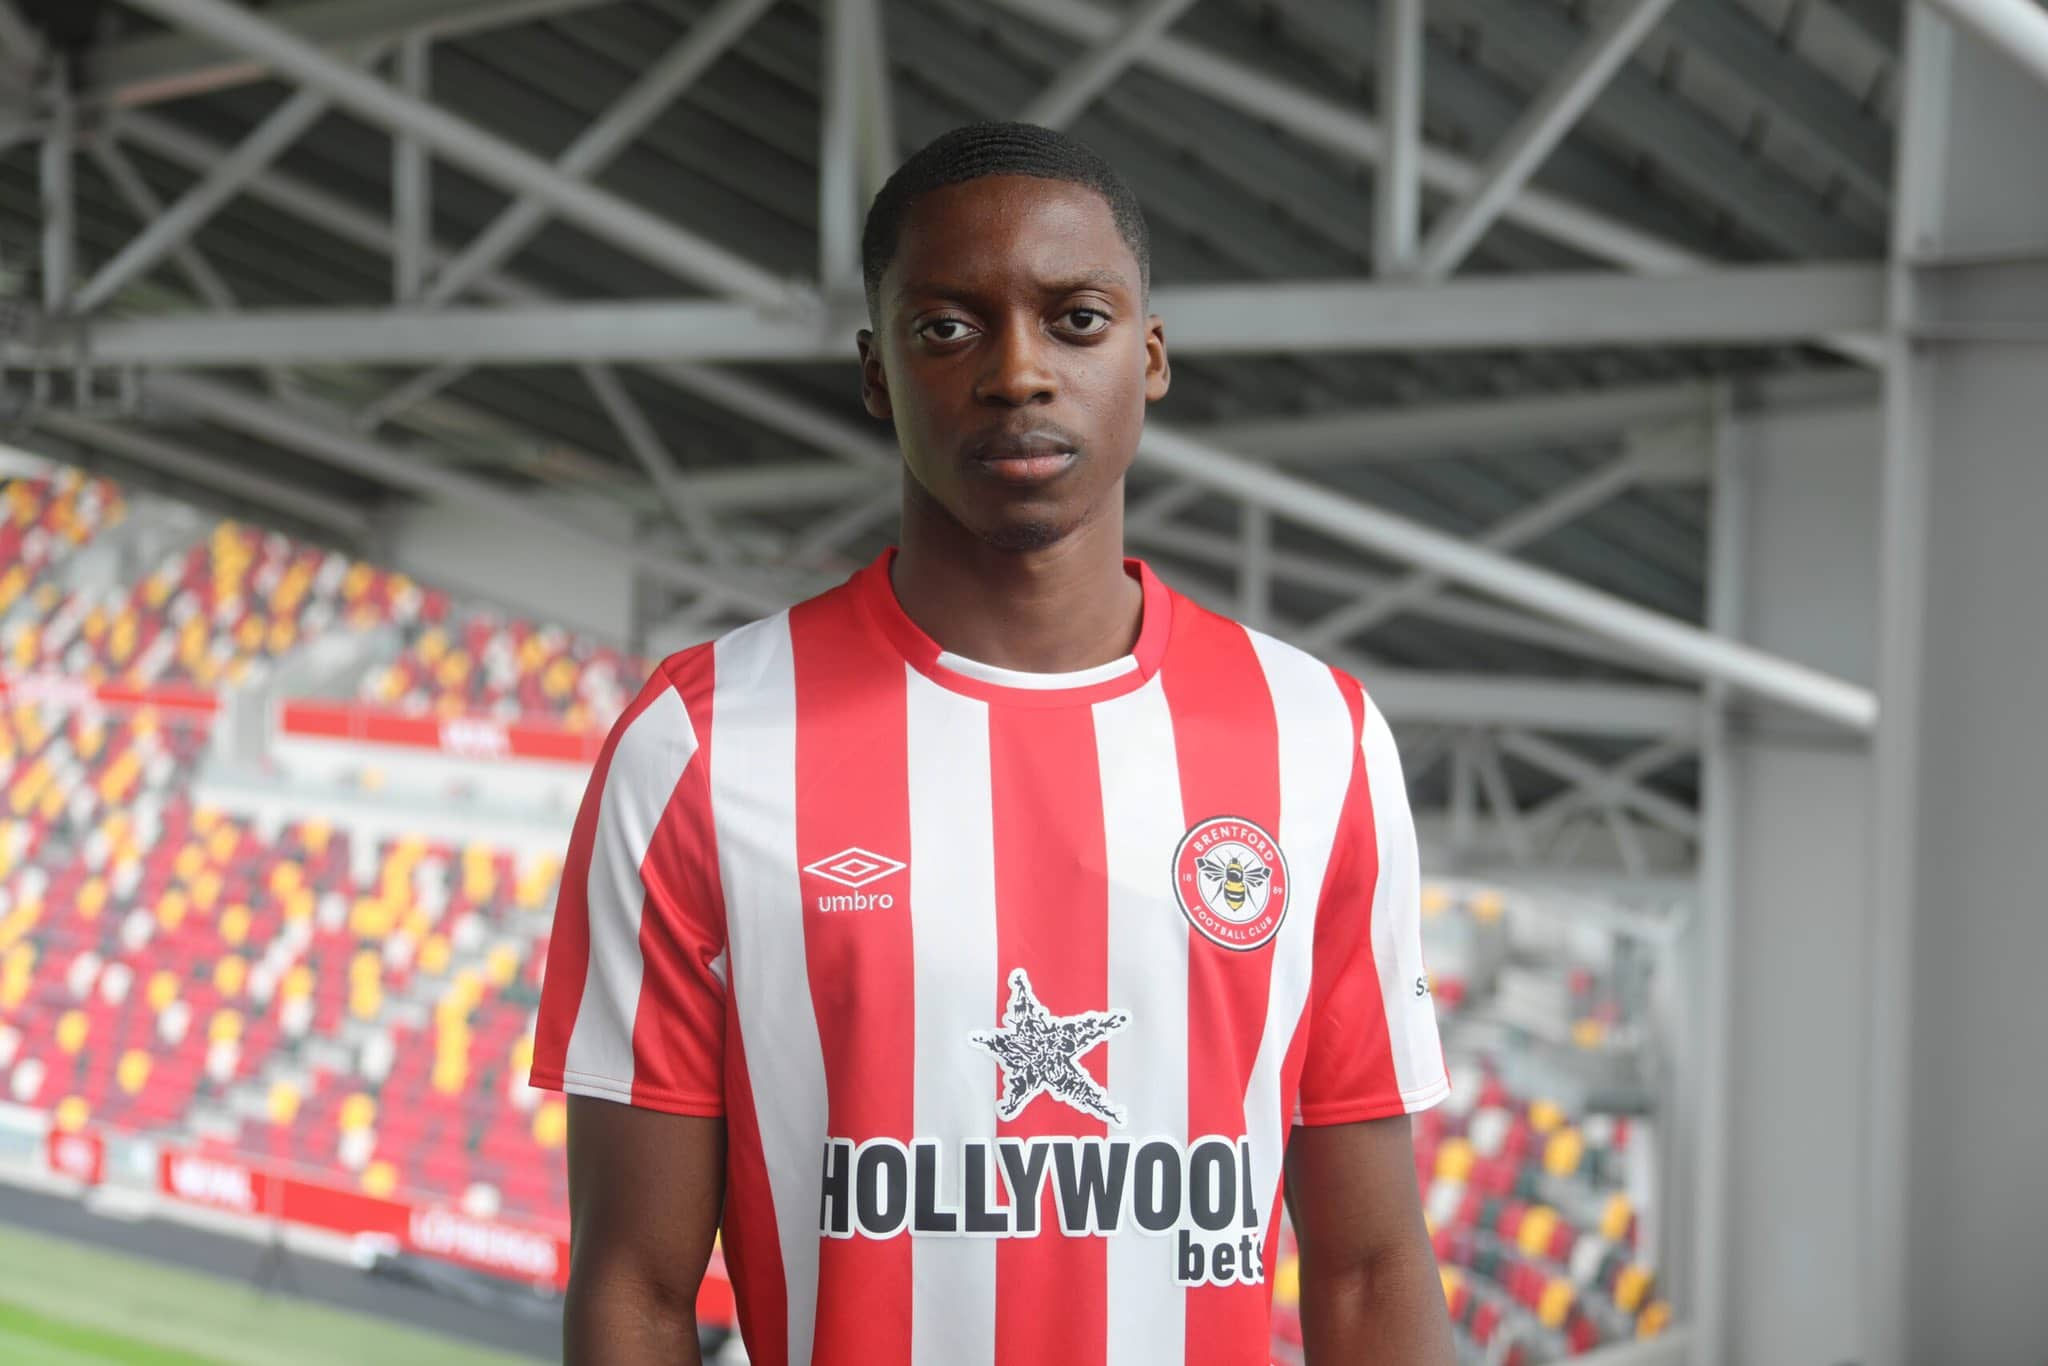 OFFICIAL: Adedokun Joins Brentford On Three-Year Contract